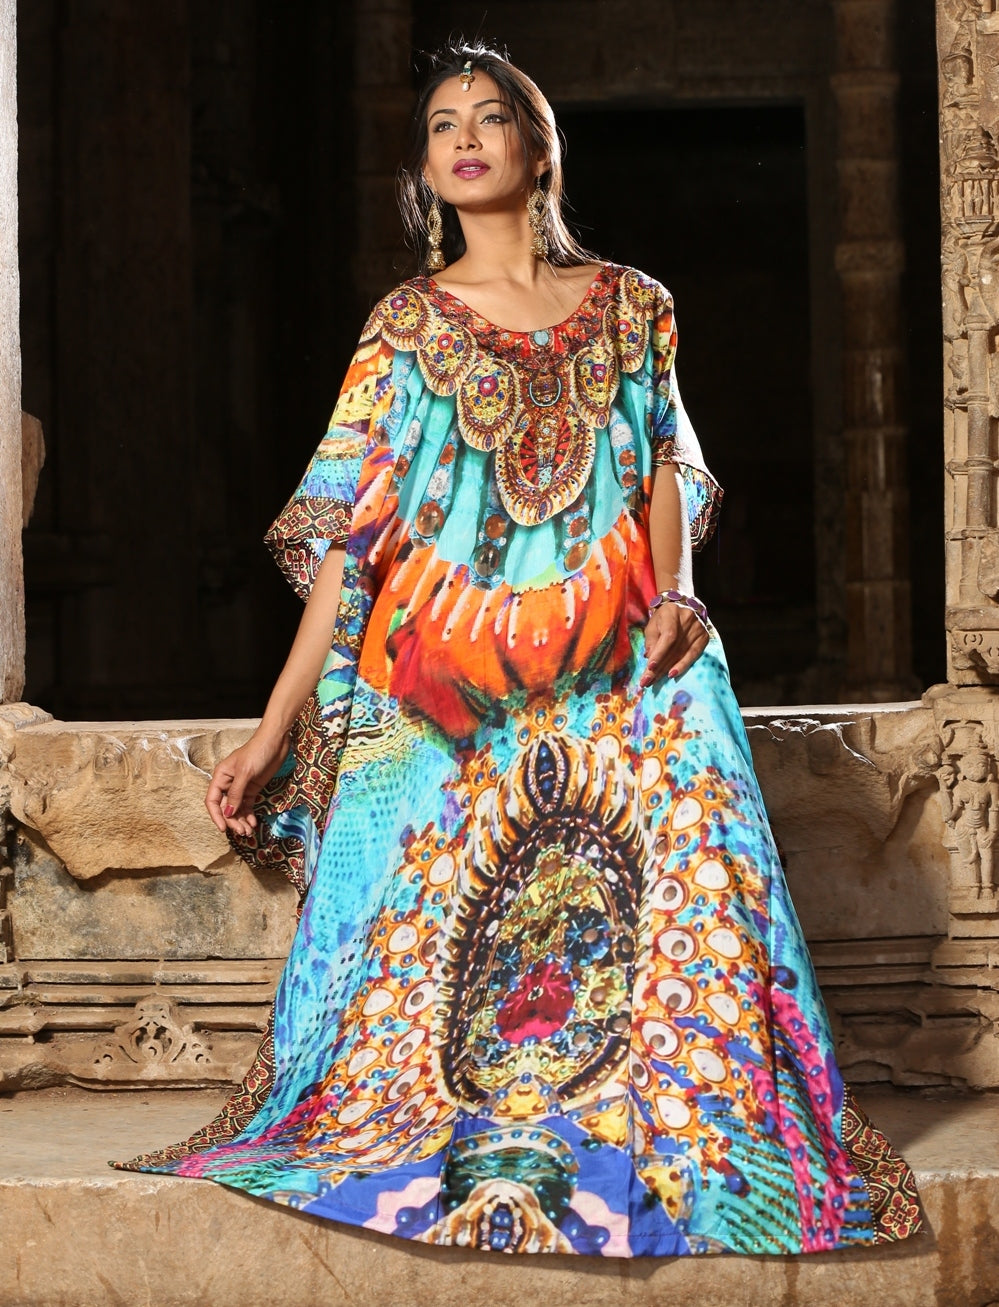 Glamorous bluey traditional Indonesians digitally printed clasp neck silk kaftan - Silk kaftan